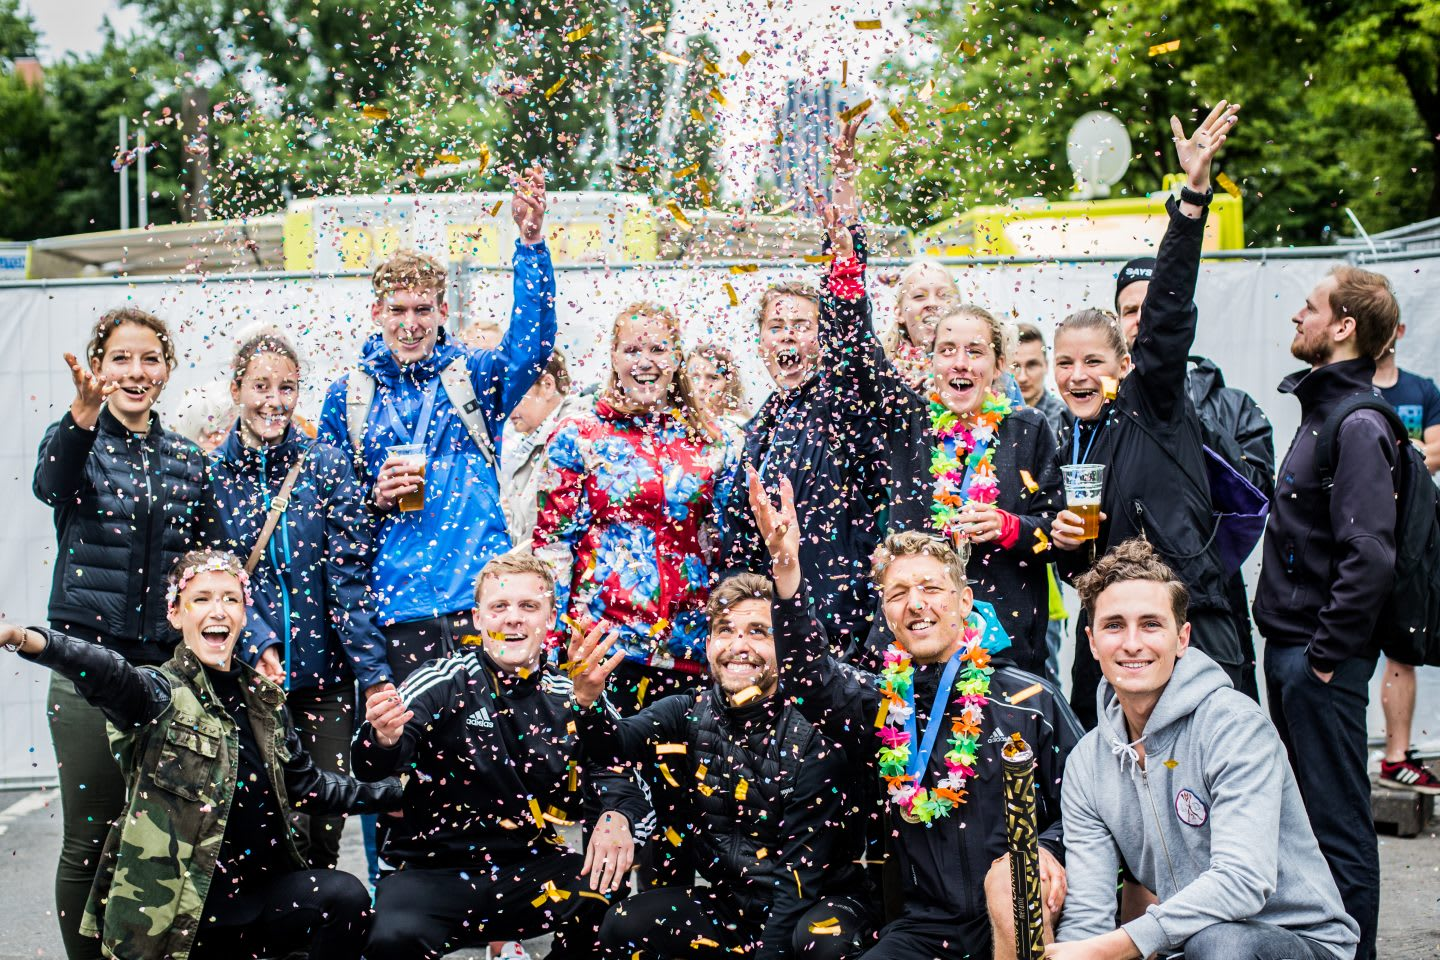 Group photo with people throwing confetti in the air. How to build a creative workplace culture, JvM, workplace, workplace culture, creativity, GamePlan A